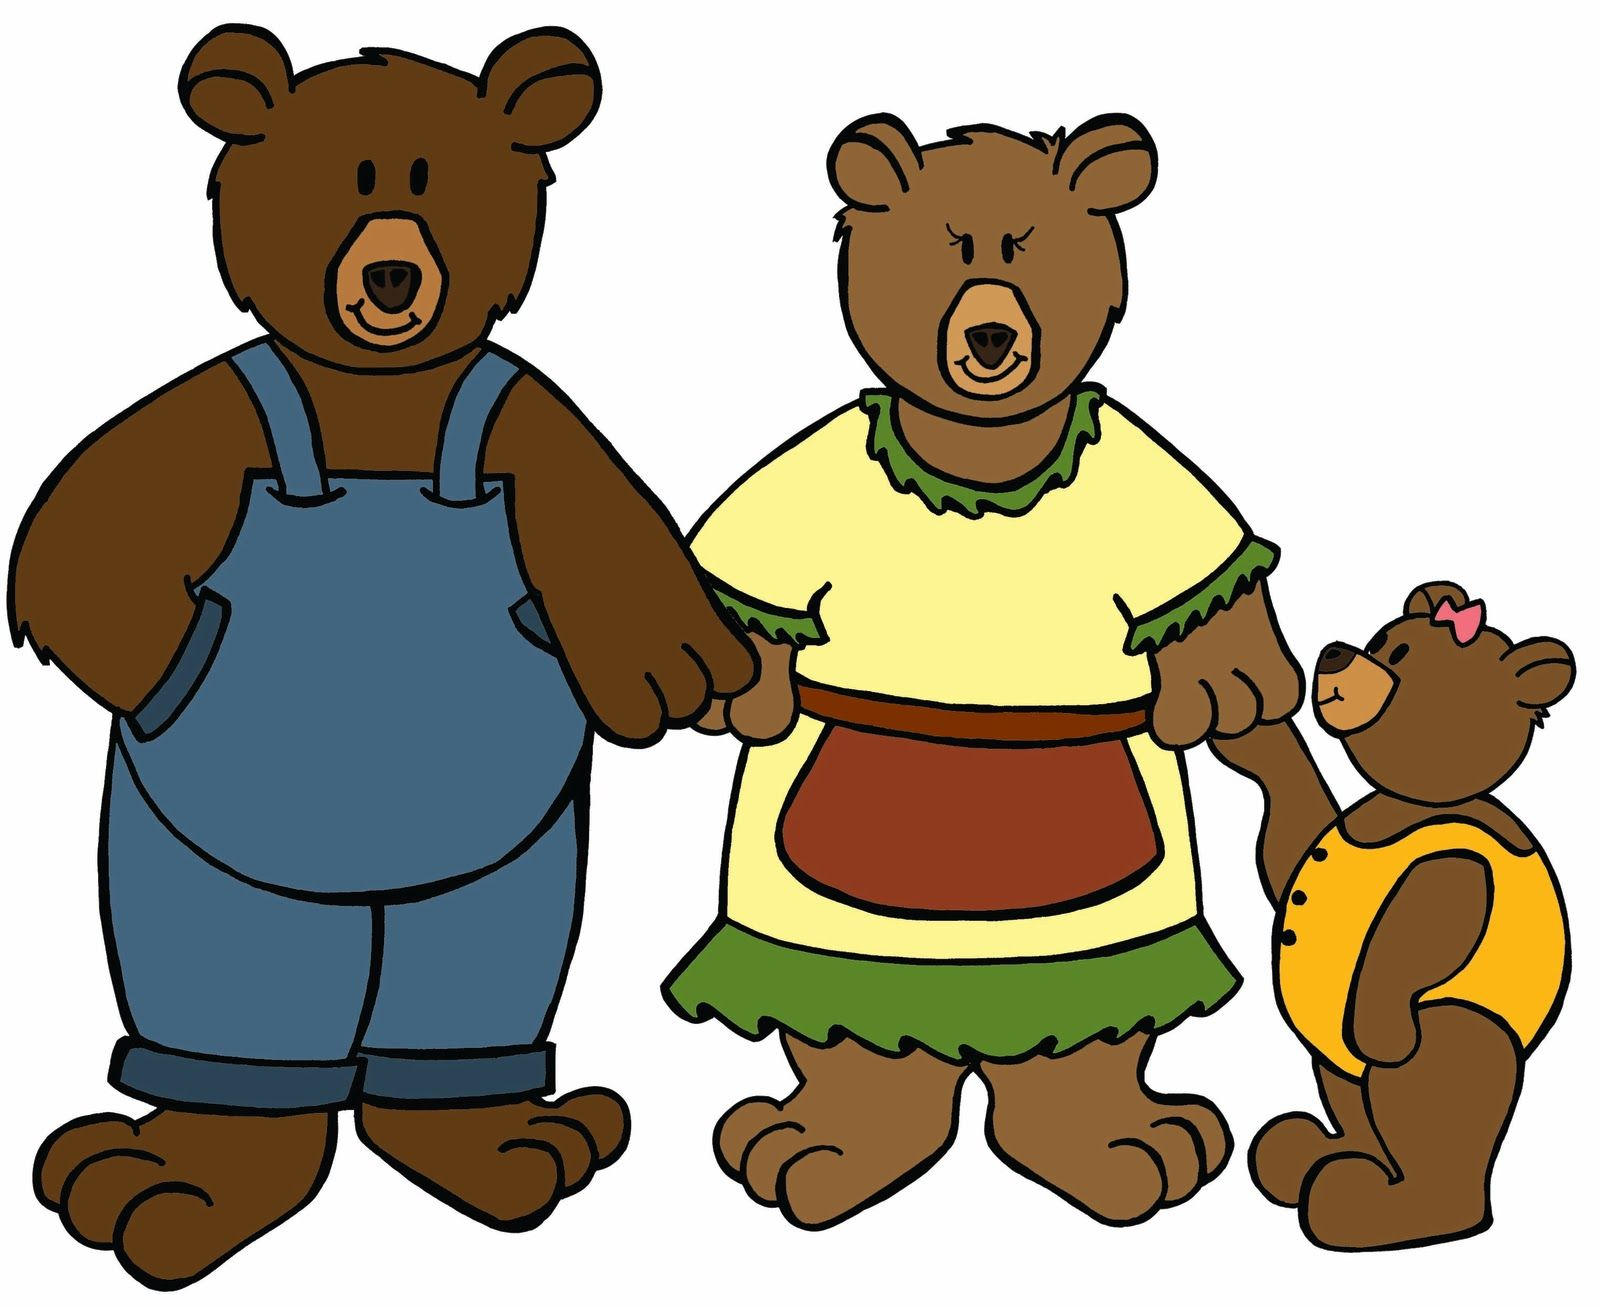 Bear Family Clipart at GetDrawings.com.